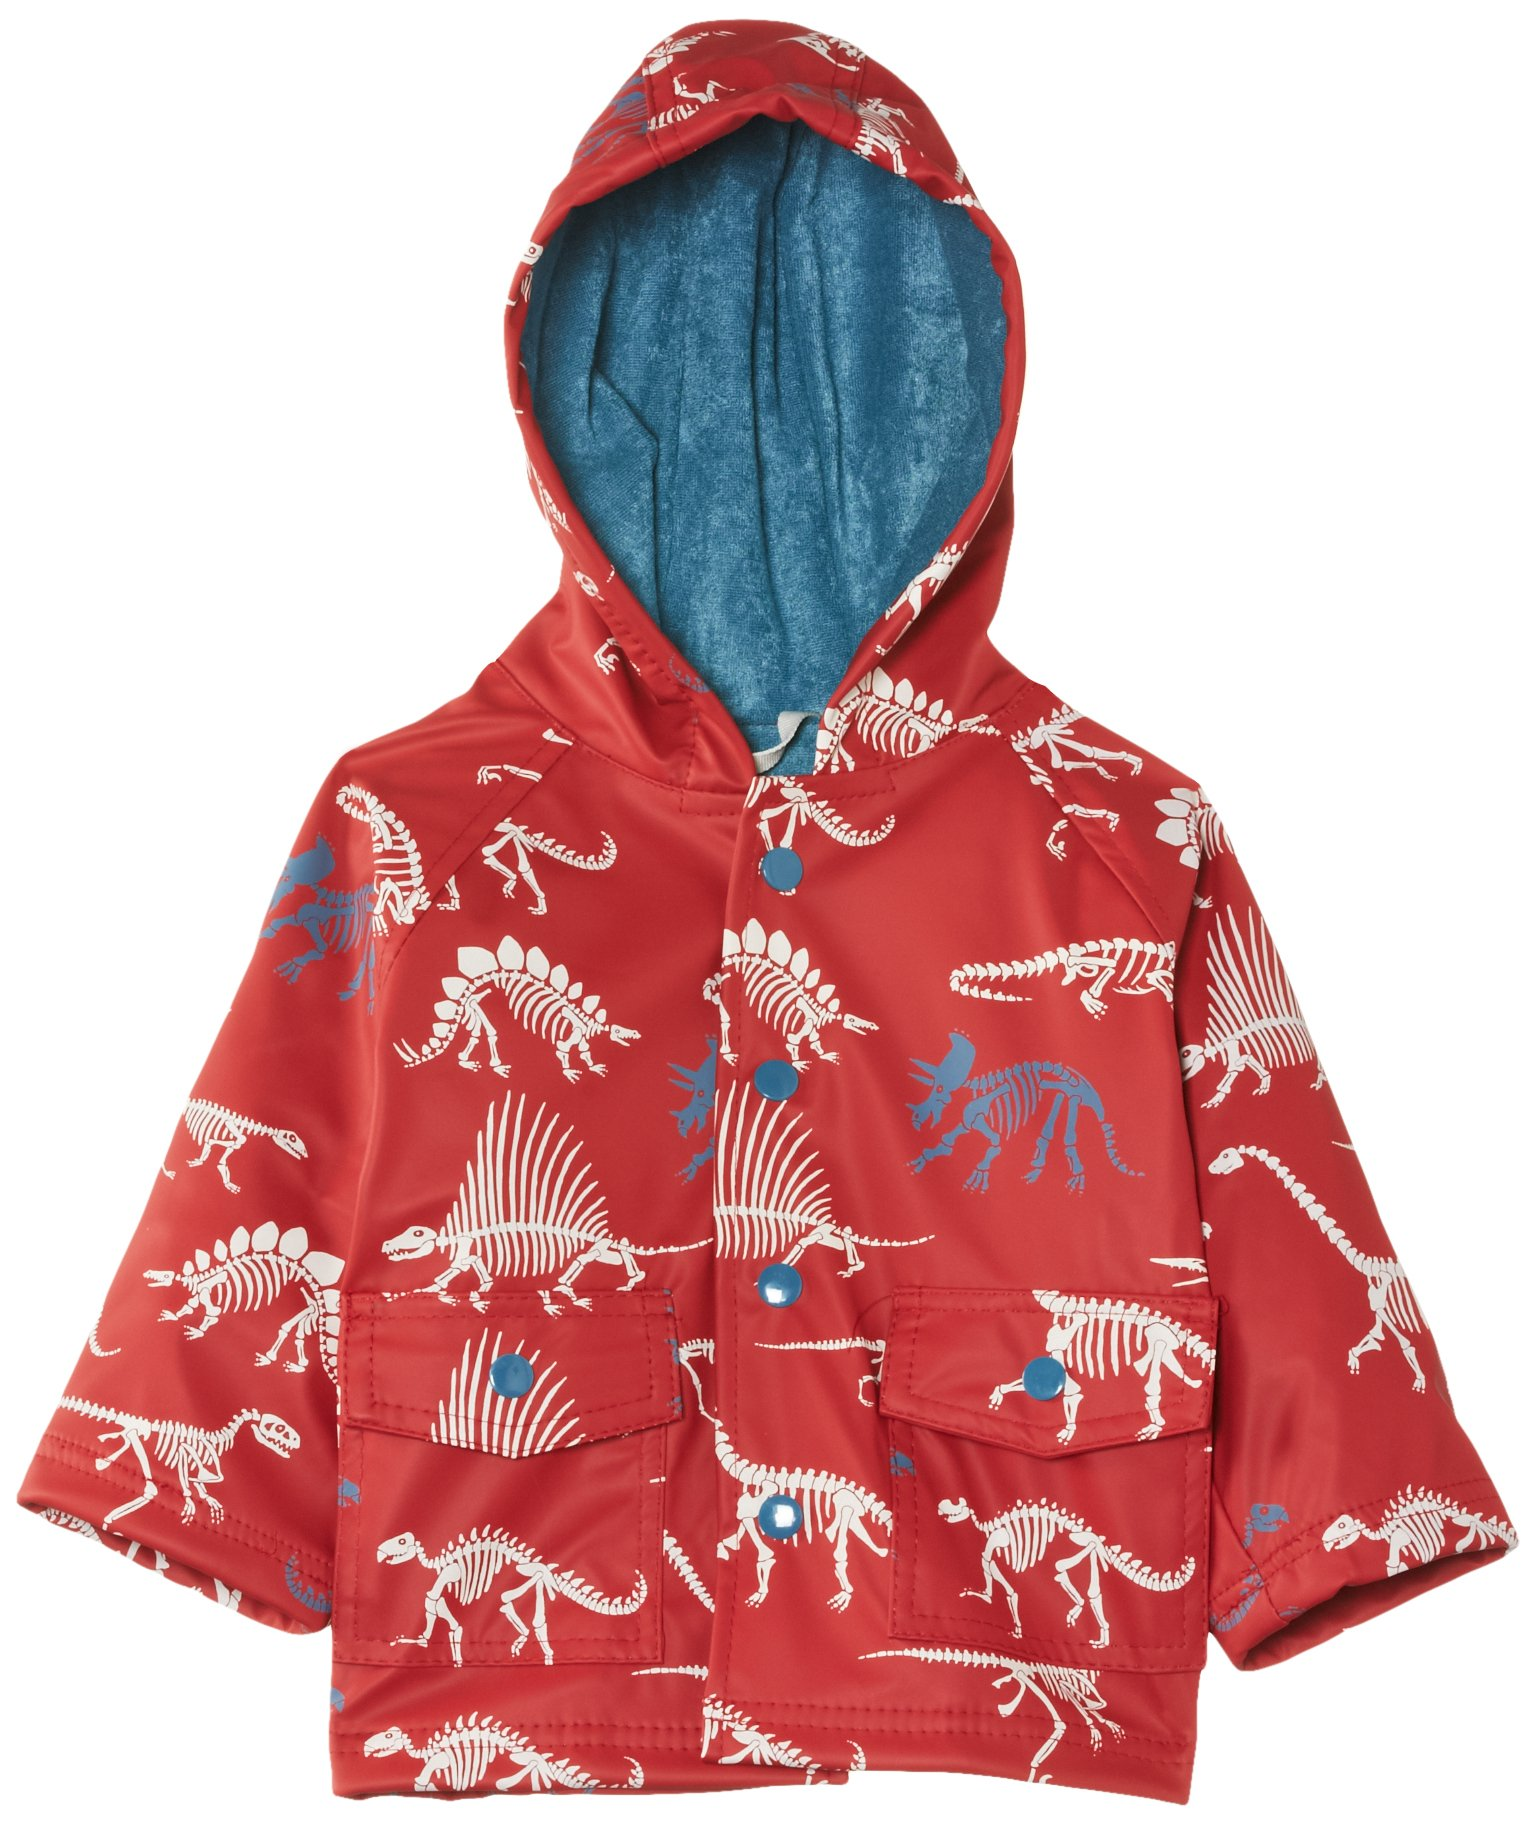 Hatley - Baby Baby Boys' Raincoat Dino Bones, Red, 24 Months by Hatley